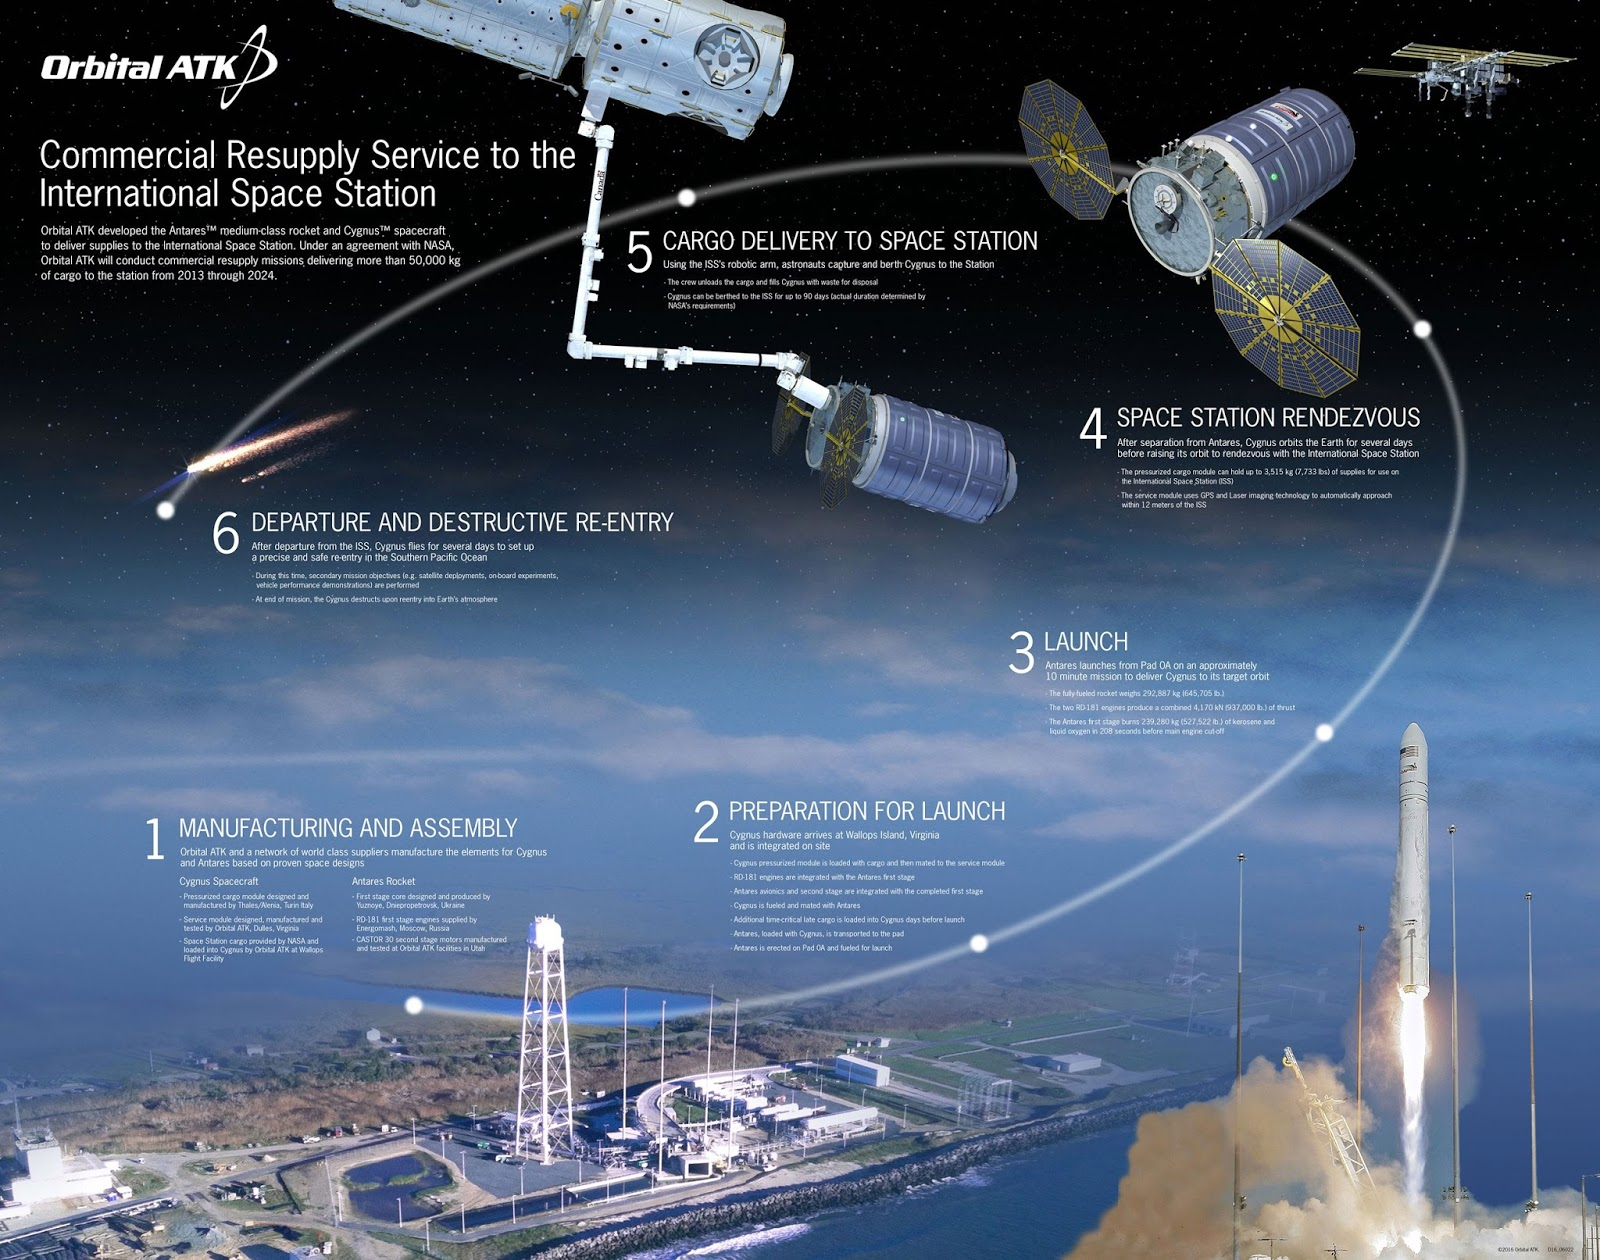 Orbital ATK Antares Launches Mission to Resupply Space Station